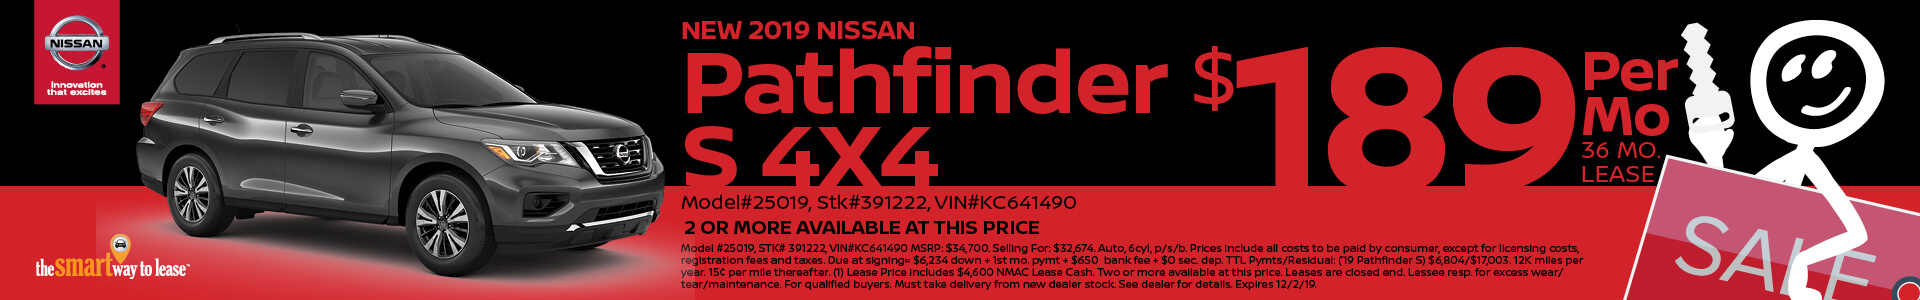 2019 Nissan Pathfinder Lease for $189